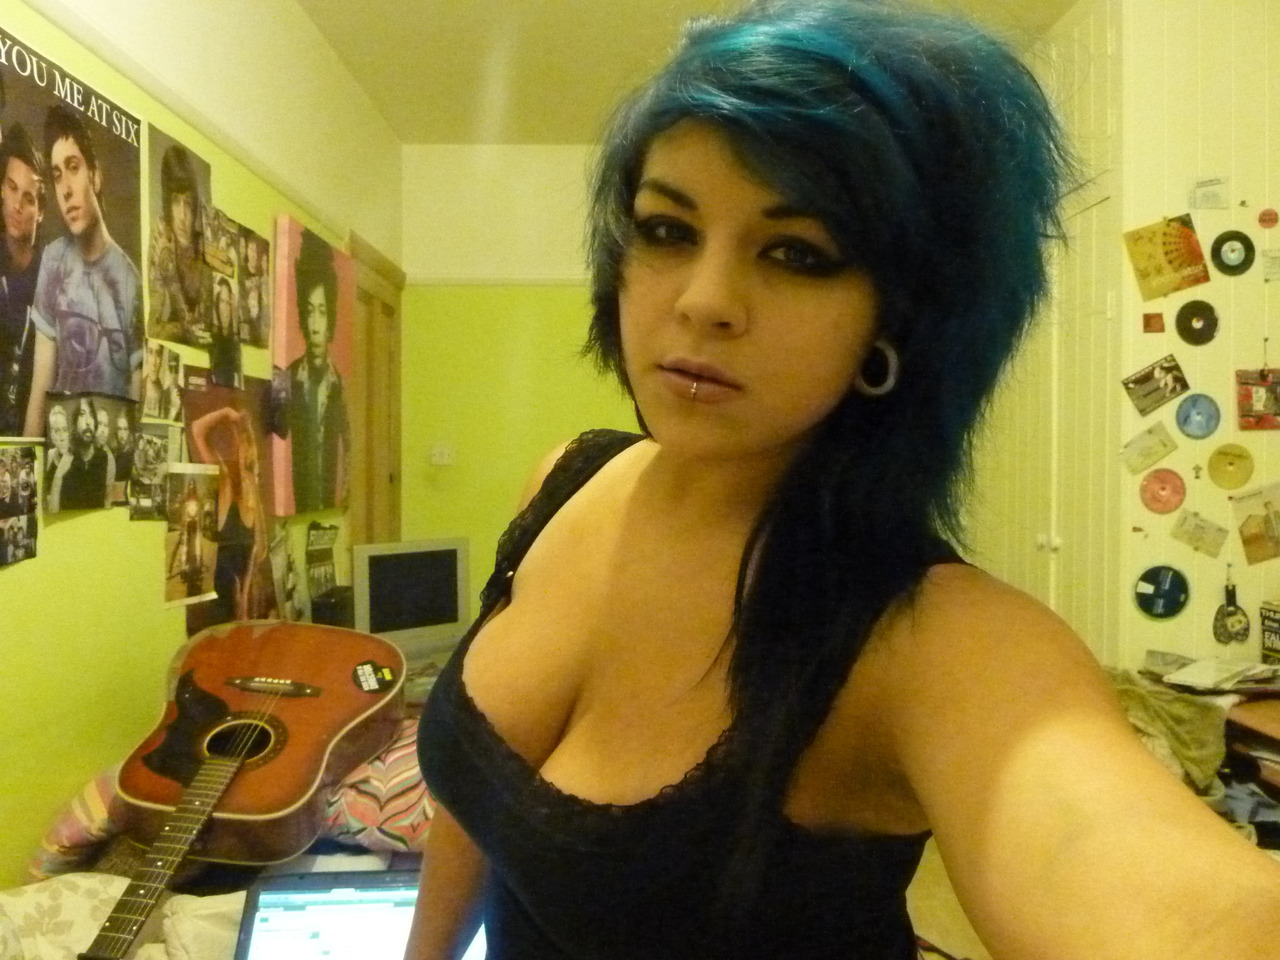 me being blue and sassy